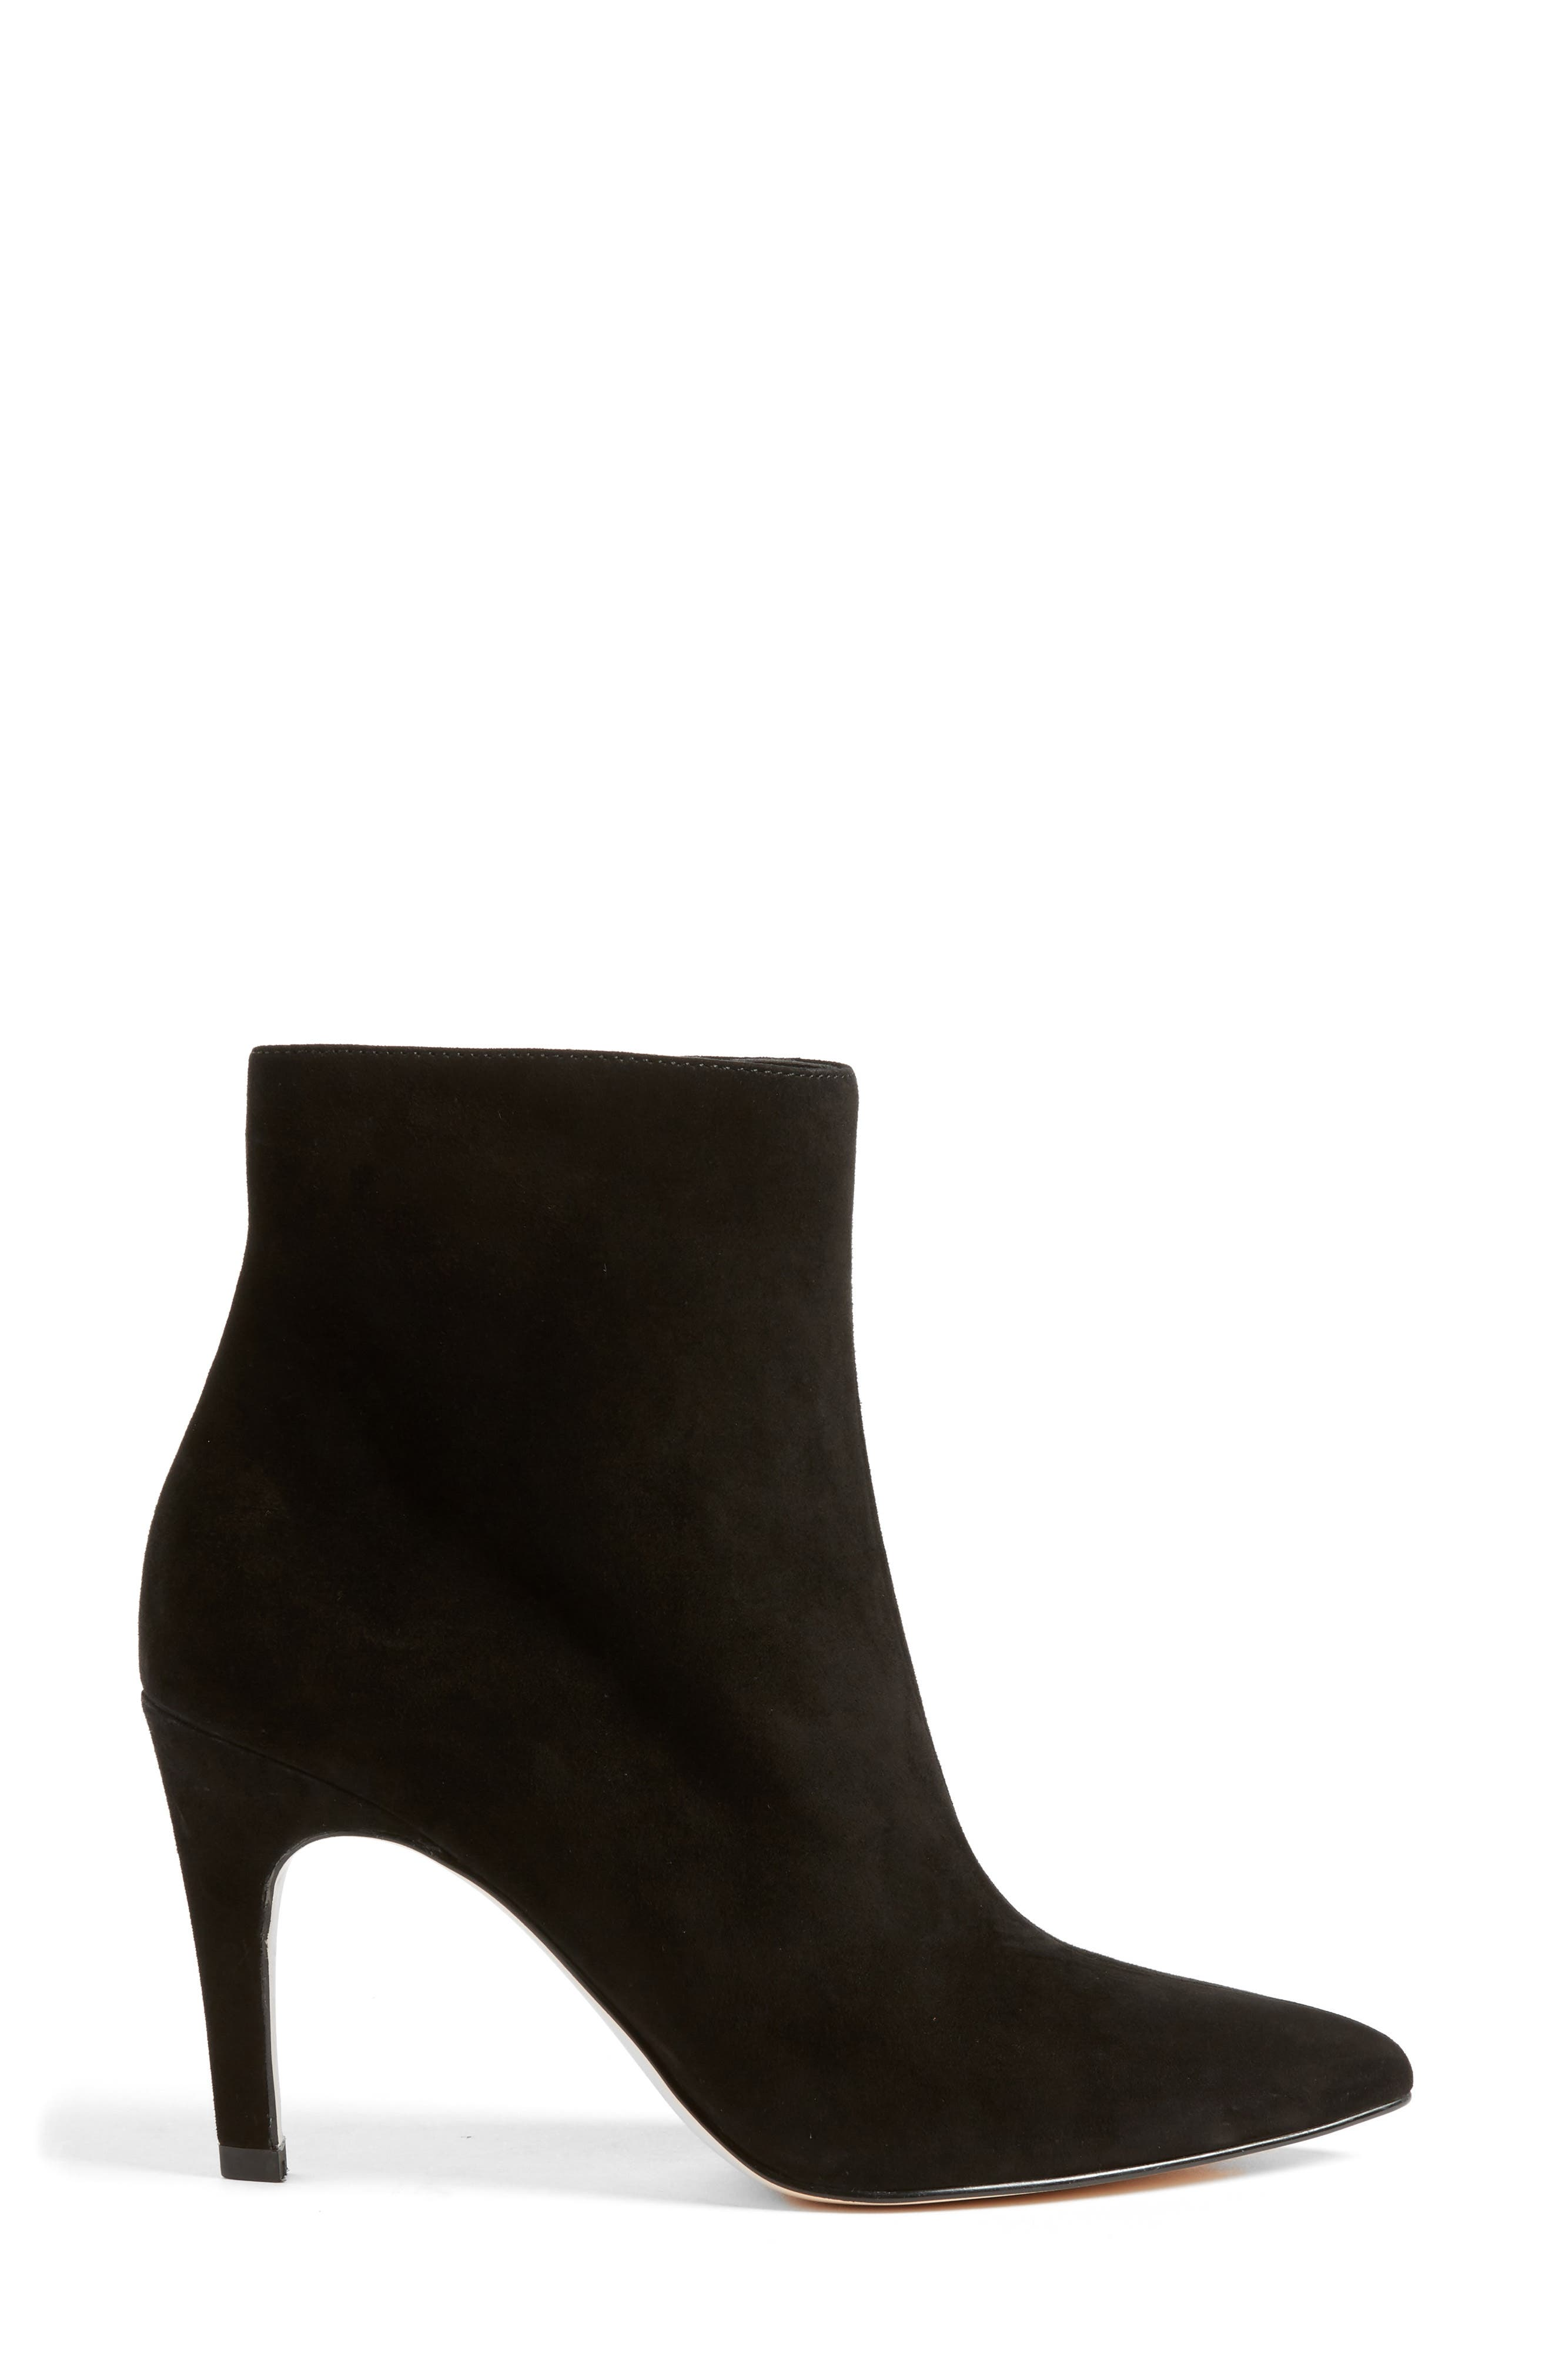 Macee Bootie,                             Alternate thumbnail 3, color,                             BLACK SUEDE